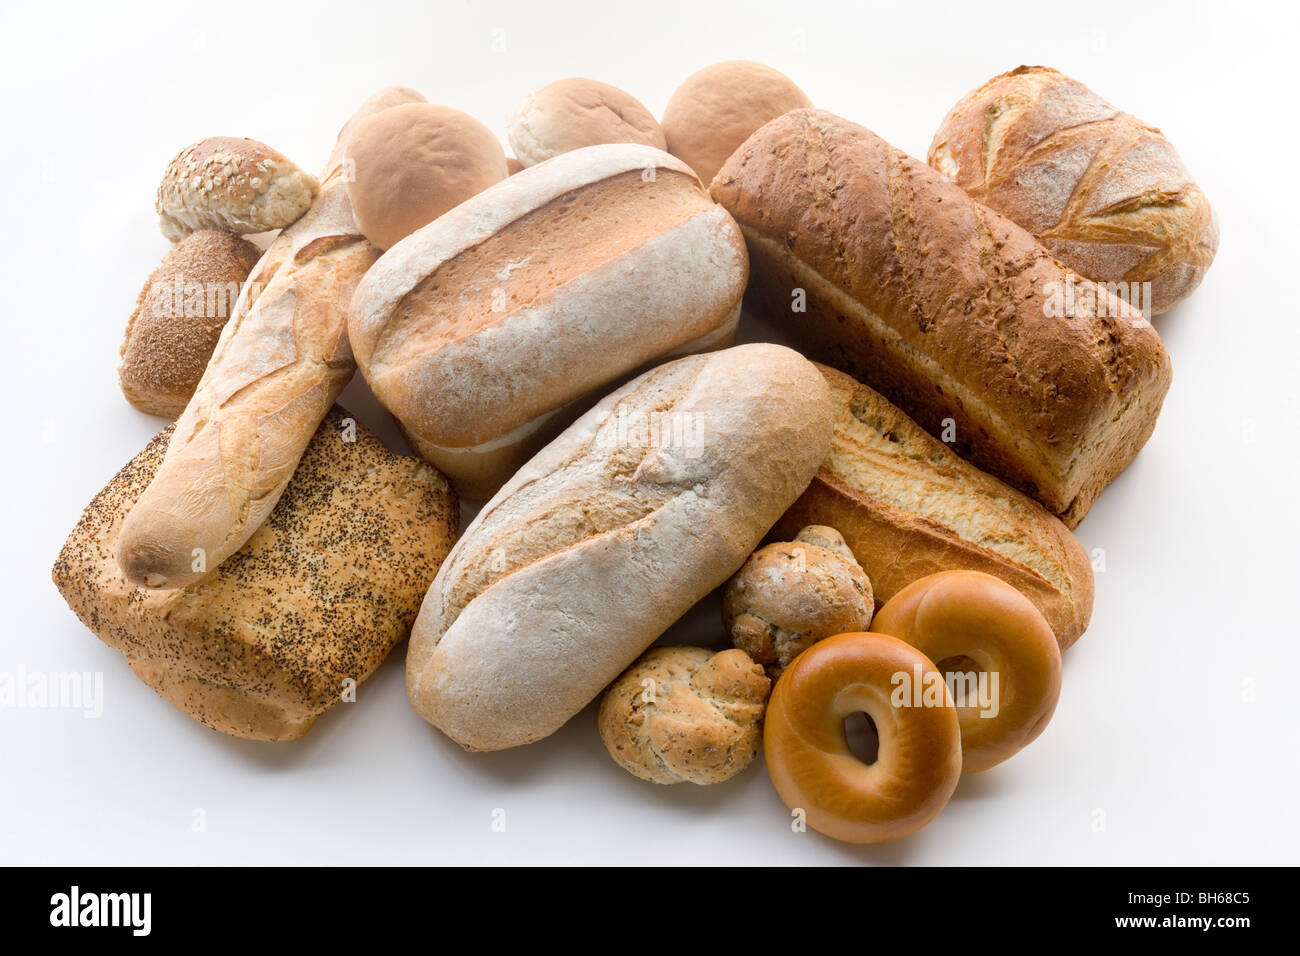 Variety of Bread Products - Stock Image